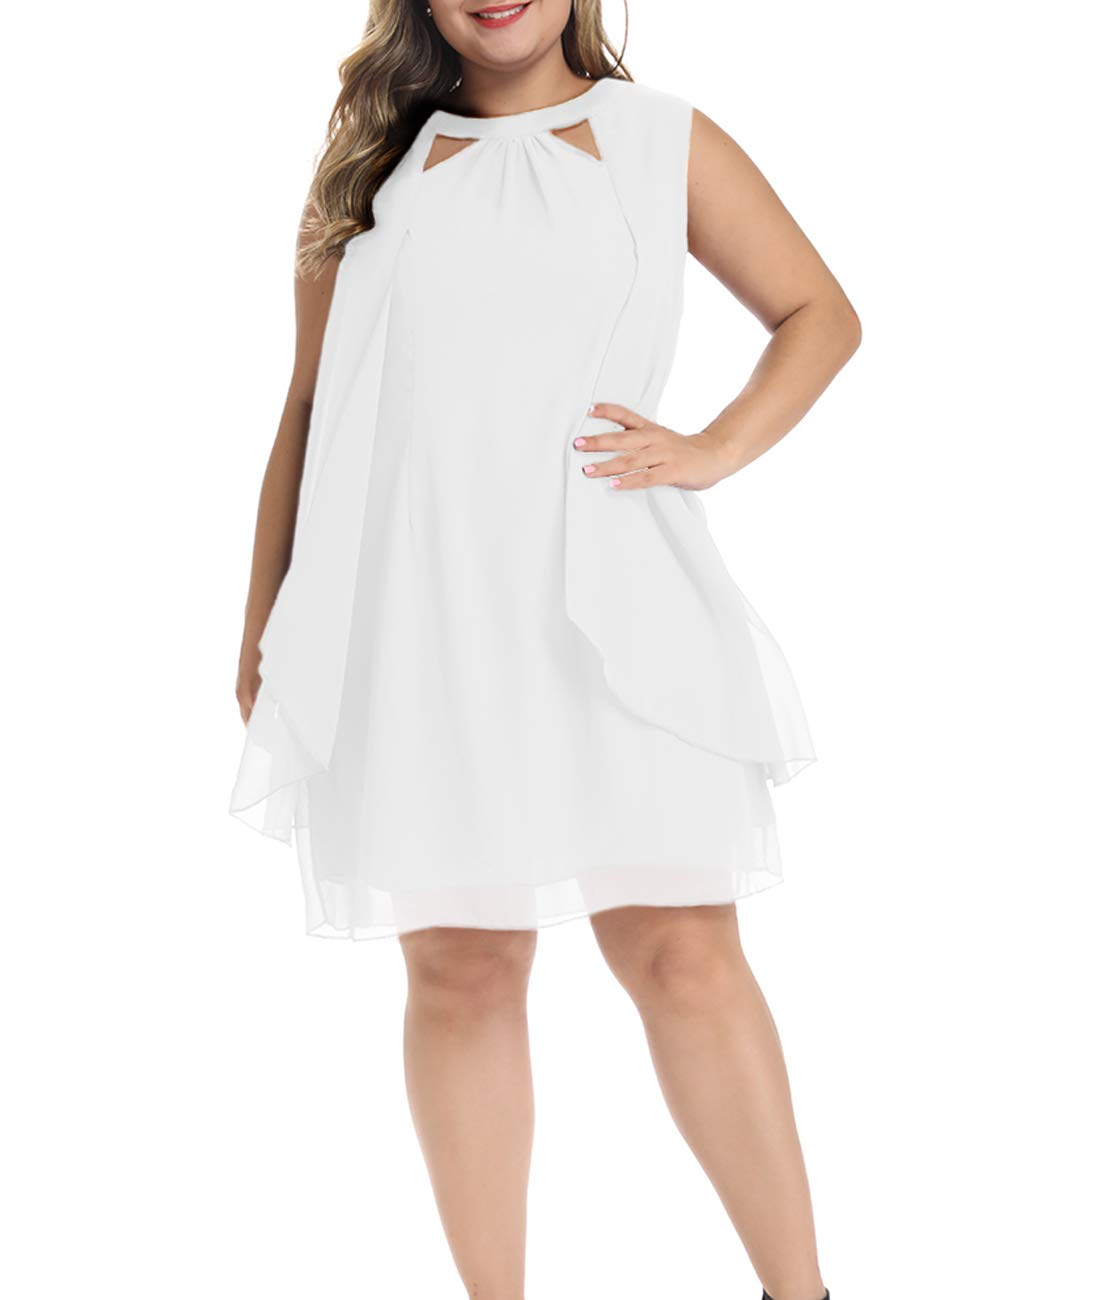 Lalagen Womens Summer Chiffon Sleeveless Plus Size Cocktail Party Knee Length Dress